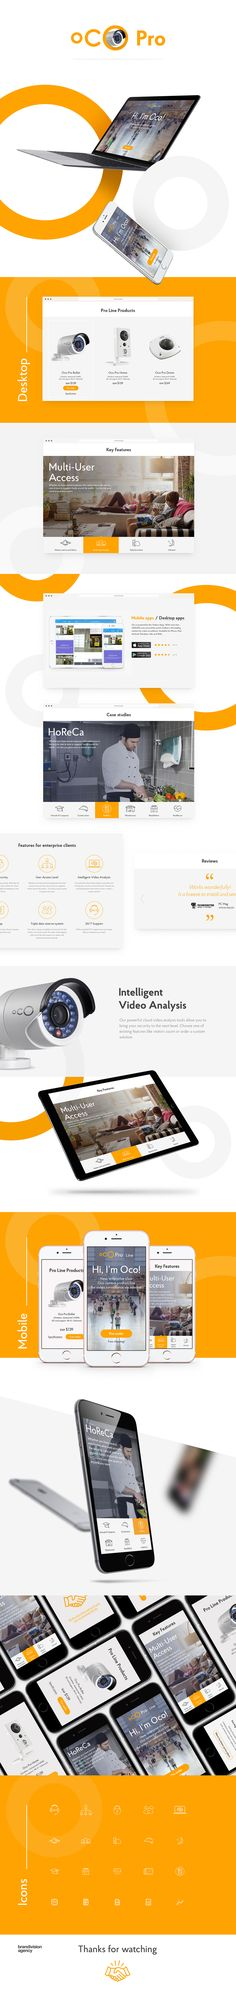 Landing page for the OCO